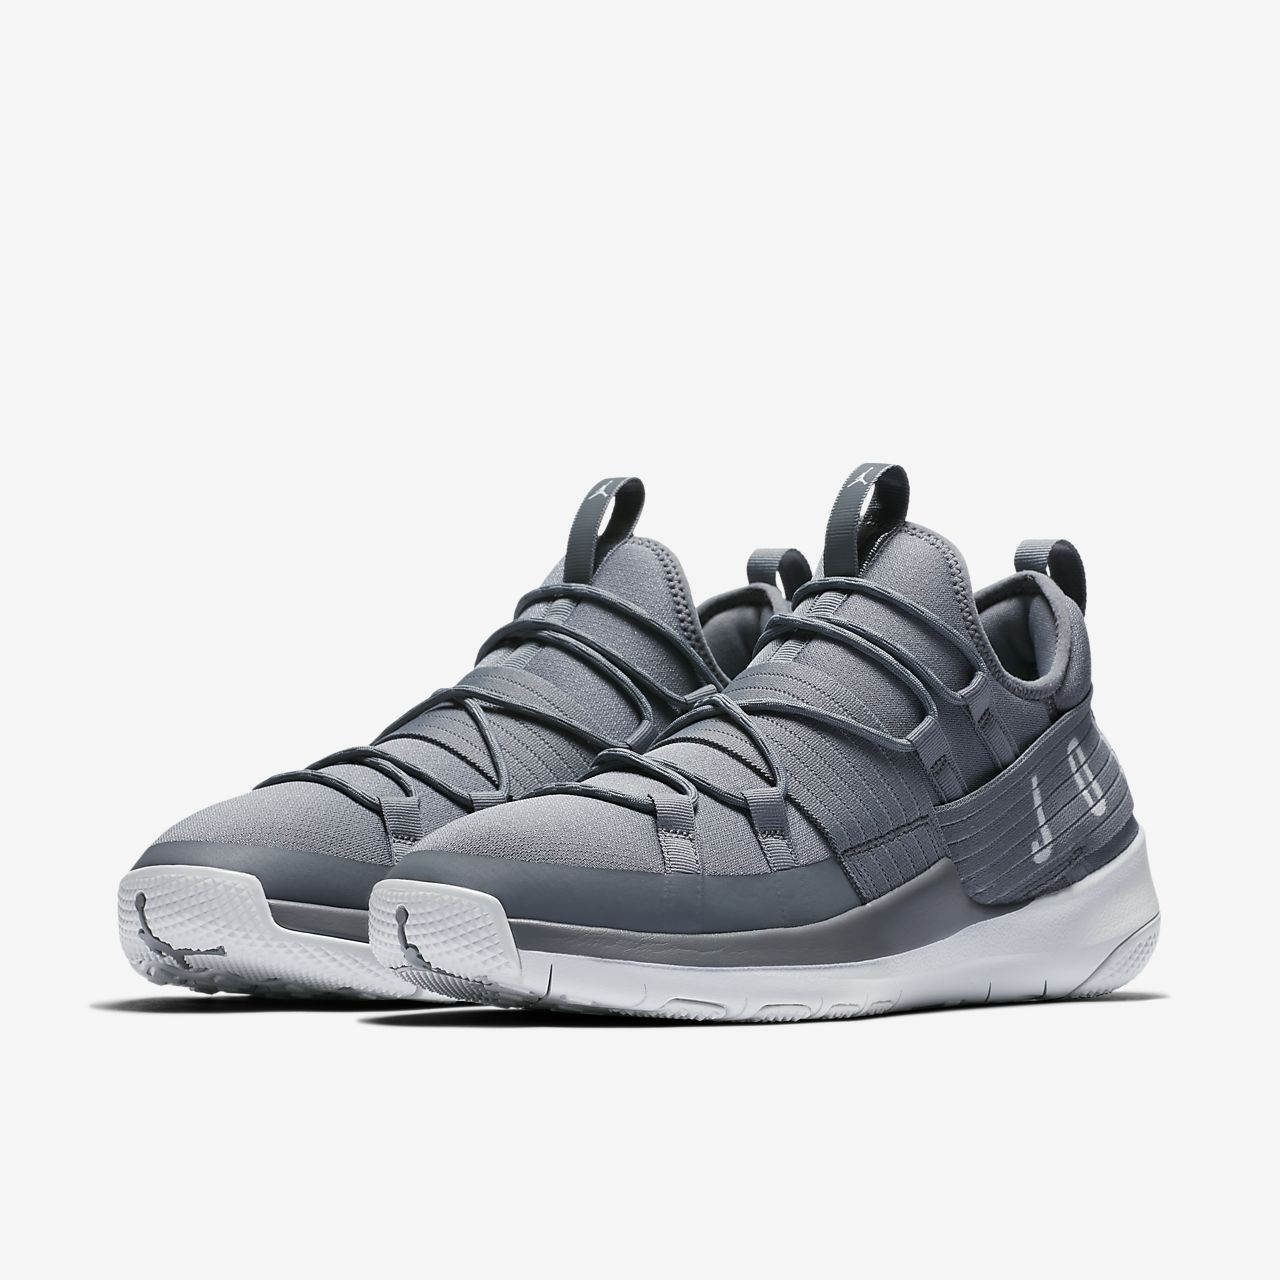 d687312b499 Jordan Trainer Pro Men's Training Shoe | Cool | Jordans trainers ...